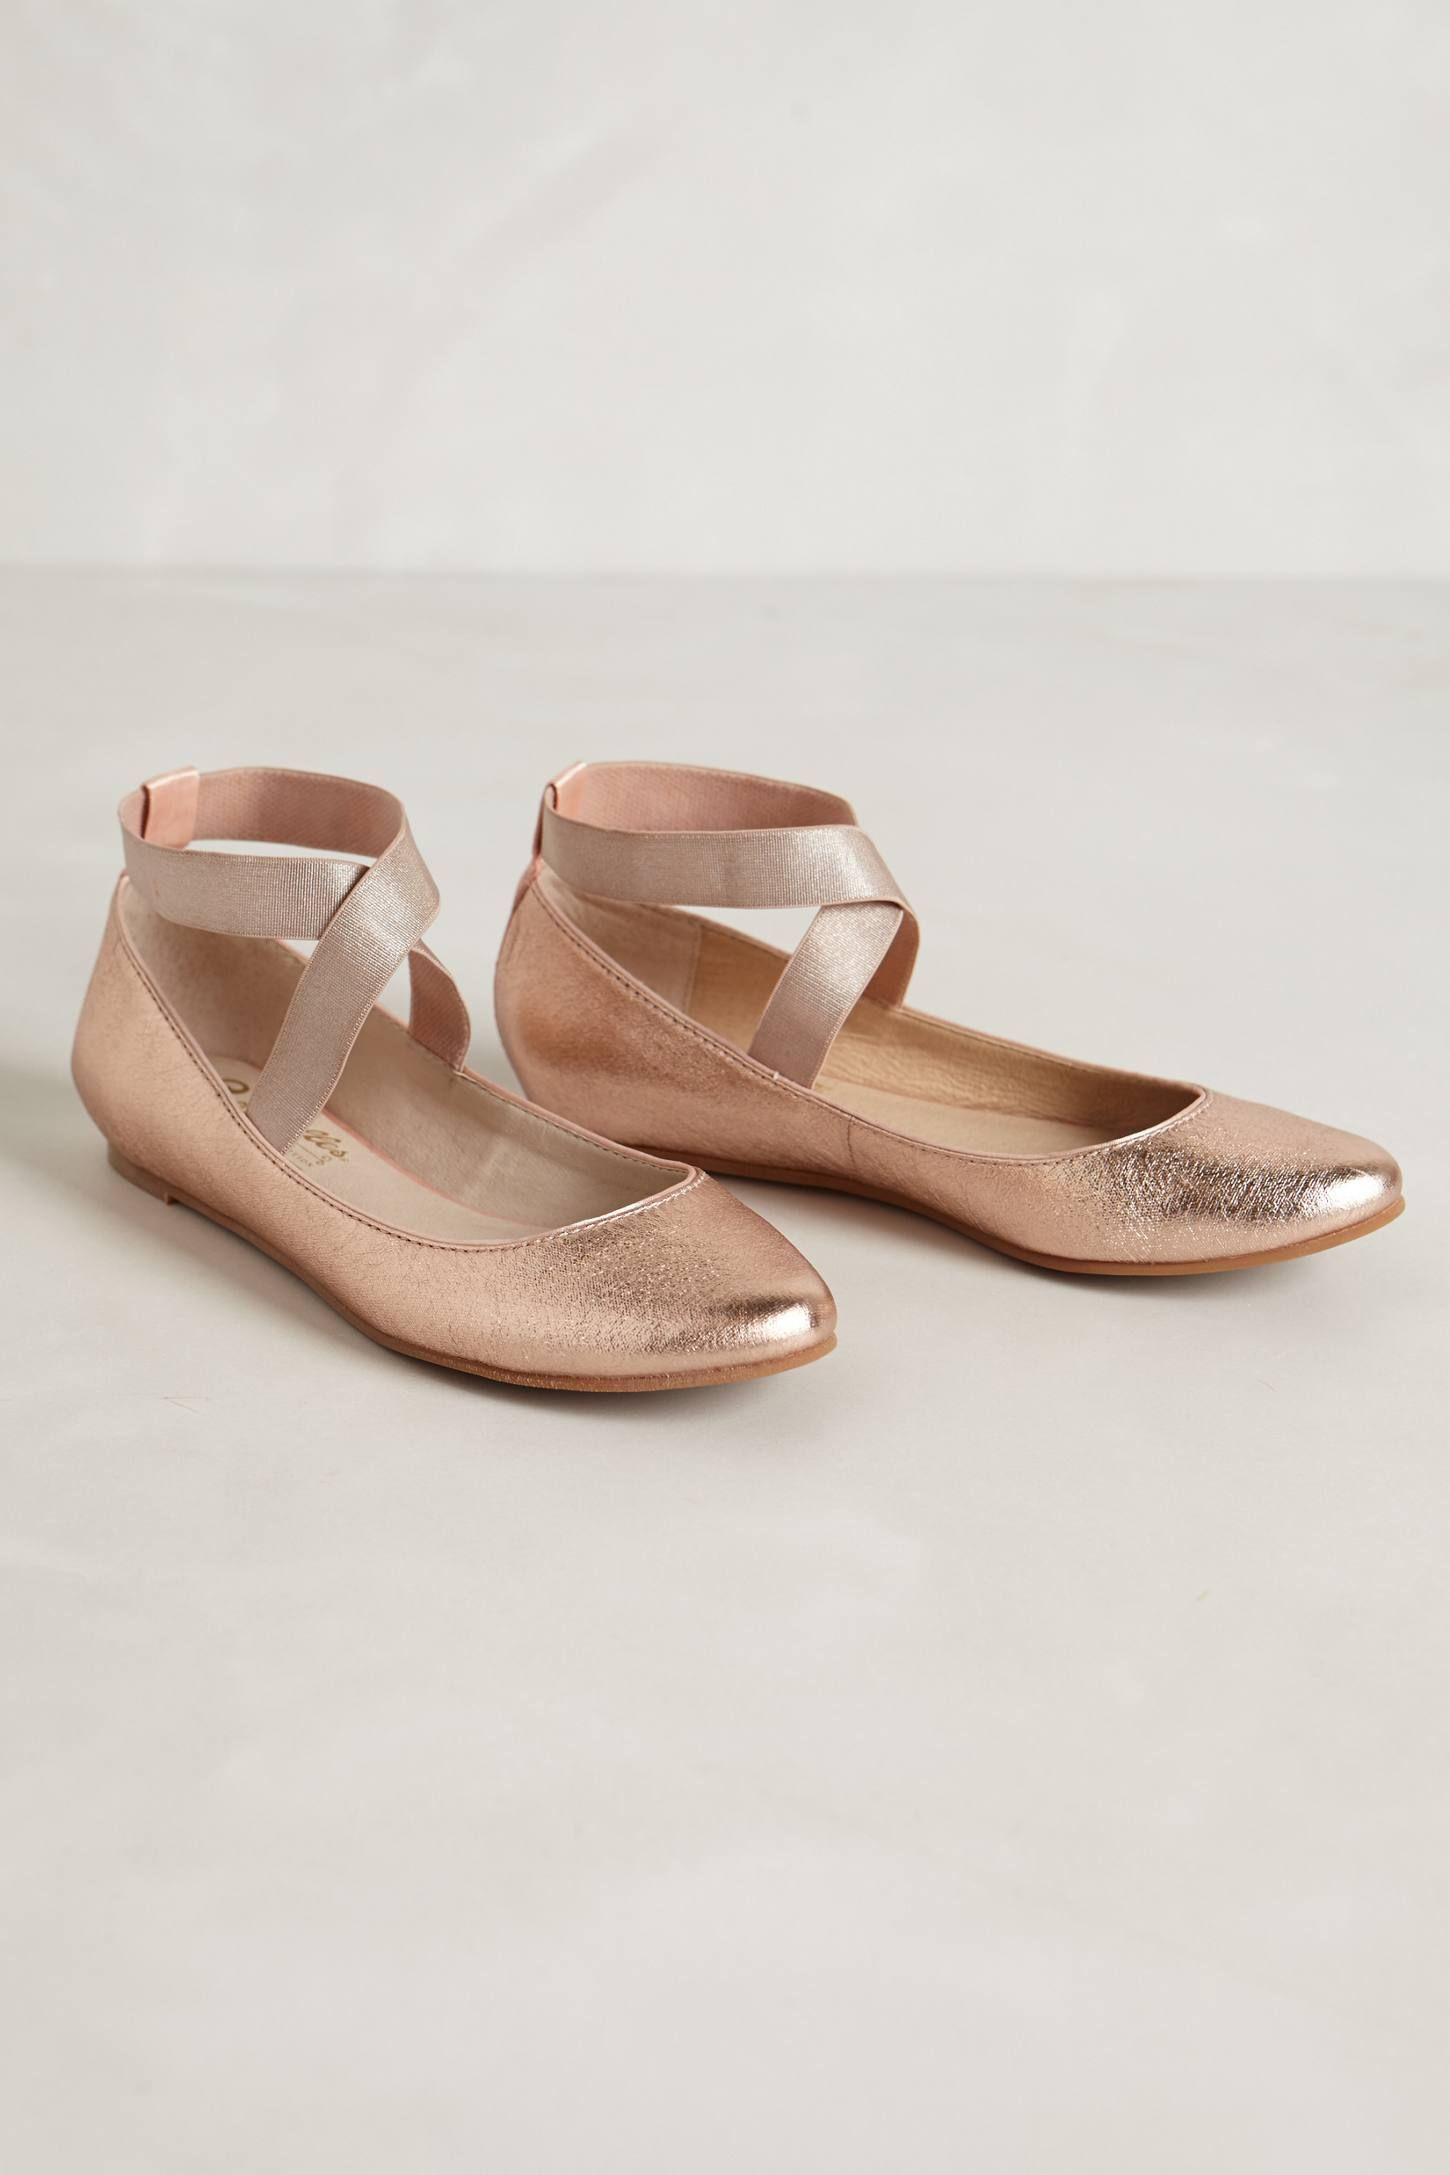 98e490906cf4fb Rose gold flats. These would be so nice under a long and puffy wedding  dress. Just comfortable enough but with a bit of glam!